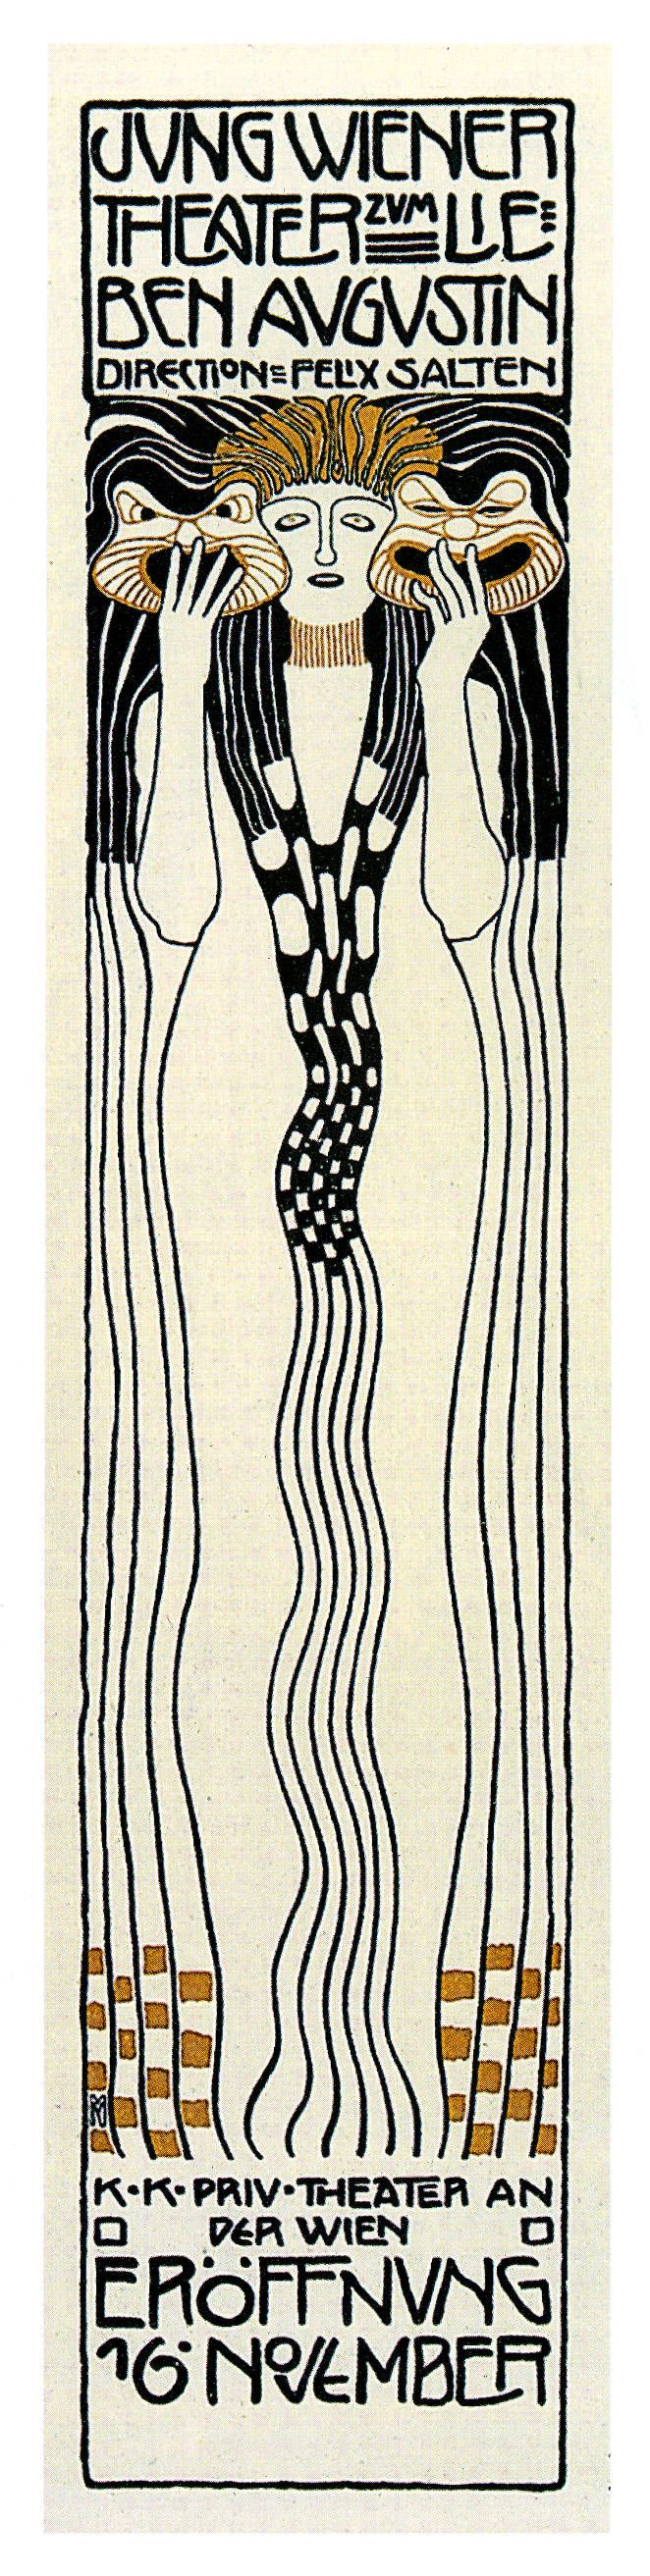 Koloman Moser(March 30, 1868 – October 18, 1918) studied at the Akademie der bildenden Künst (1886-92) and the at the Kunstgewerbeschule in Vienna (1893-95. He began as an illustrator for the art …